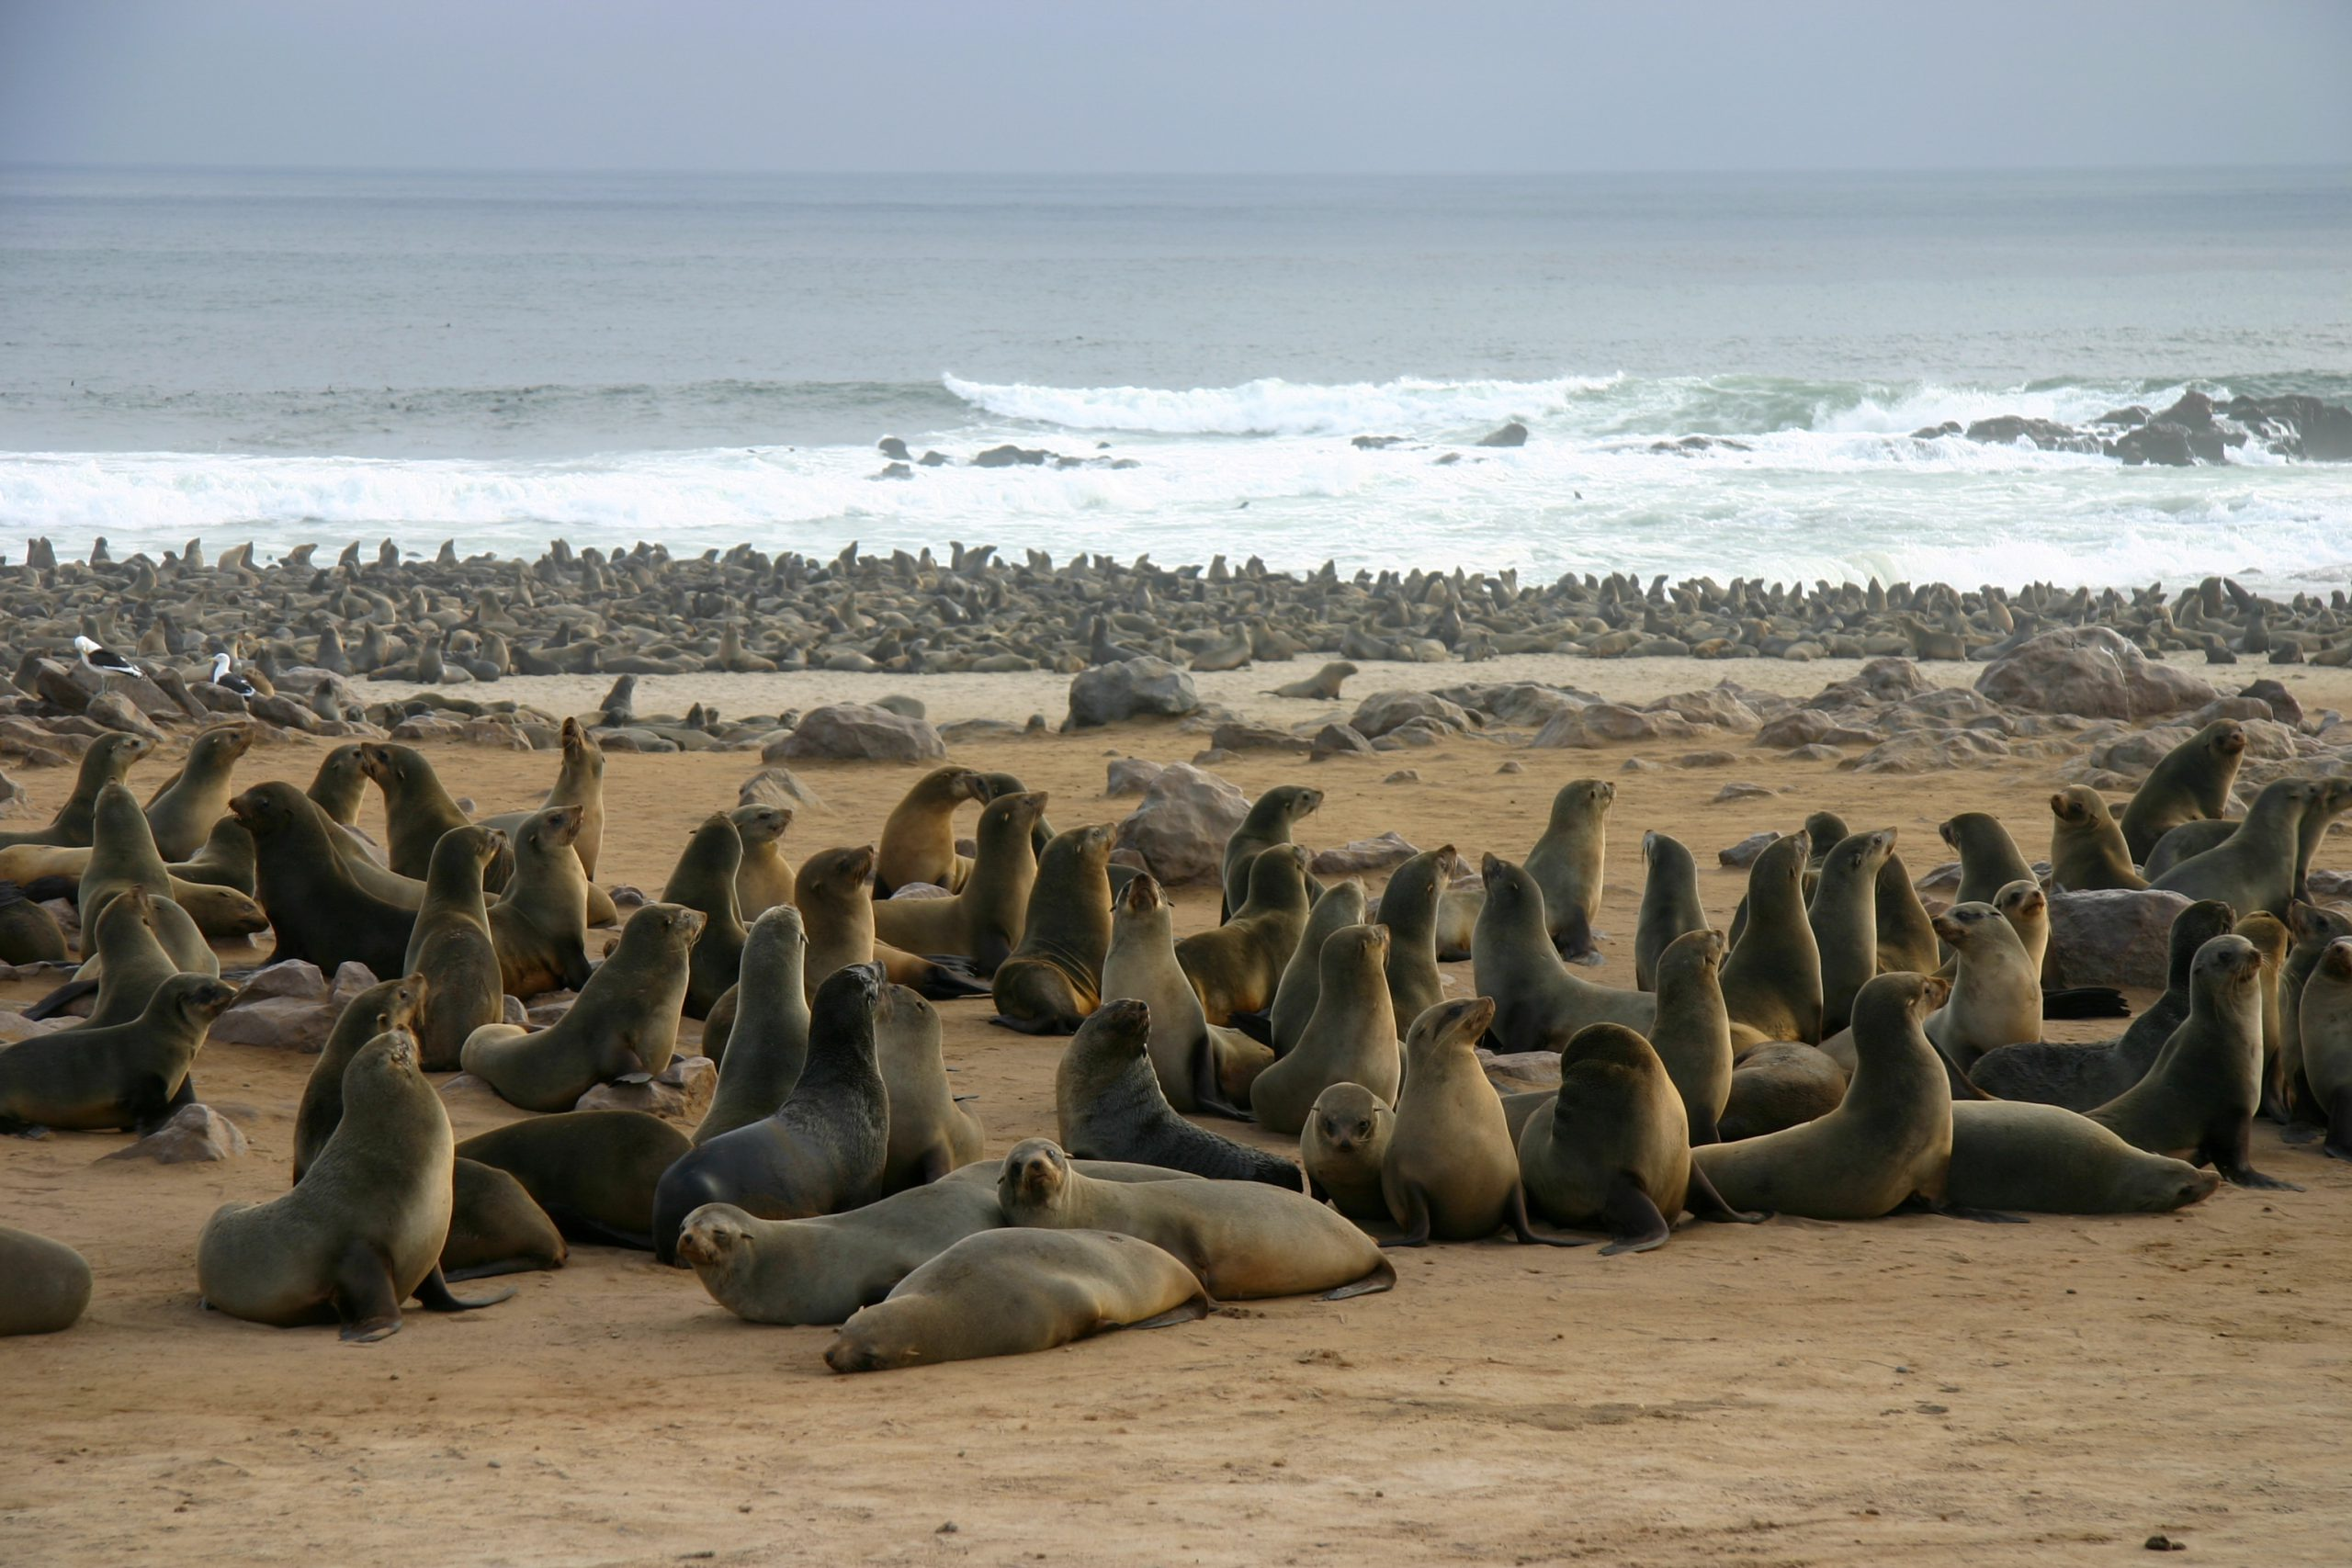 Thousands of Seals on the beach in Namibia